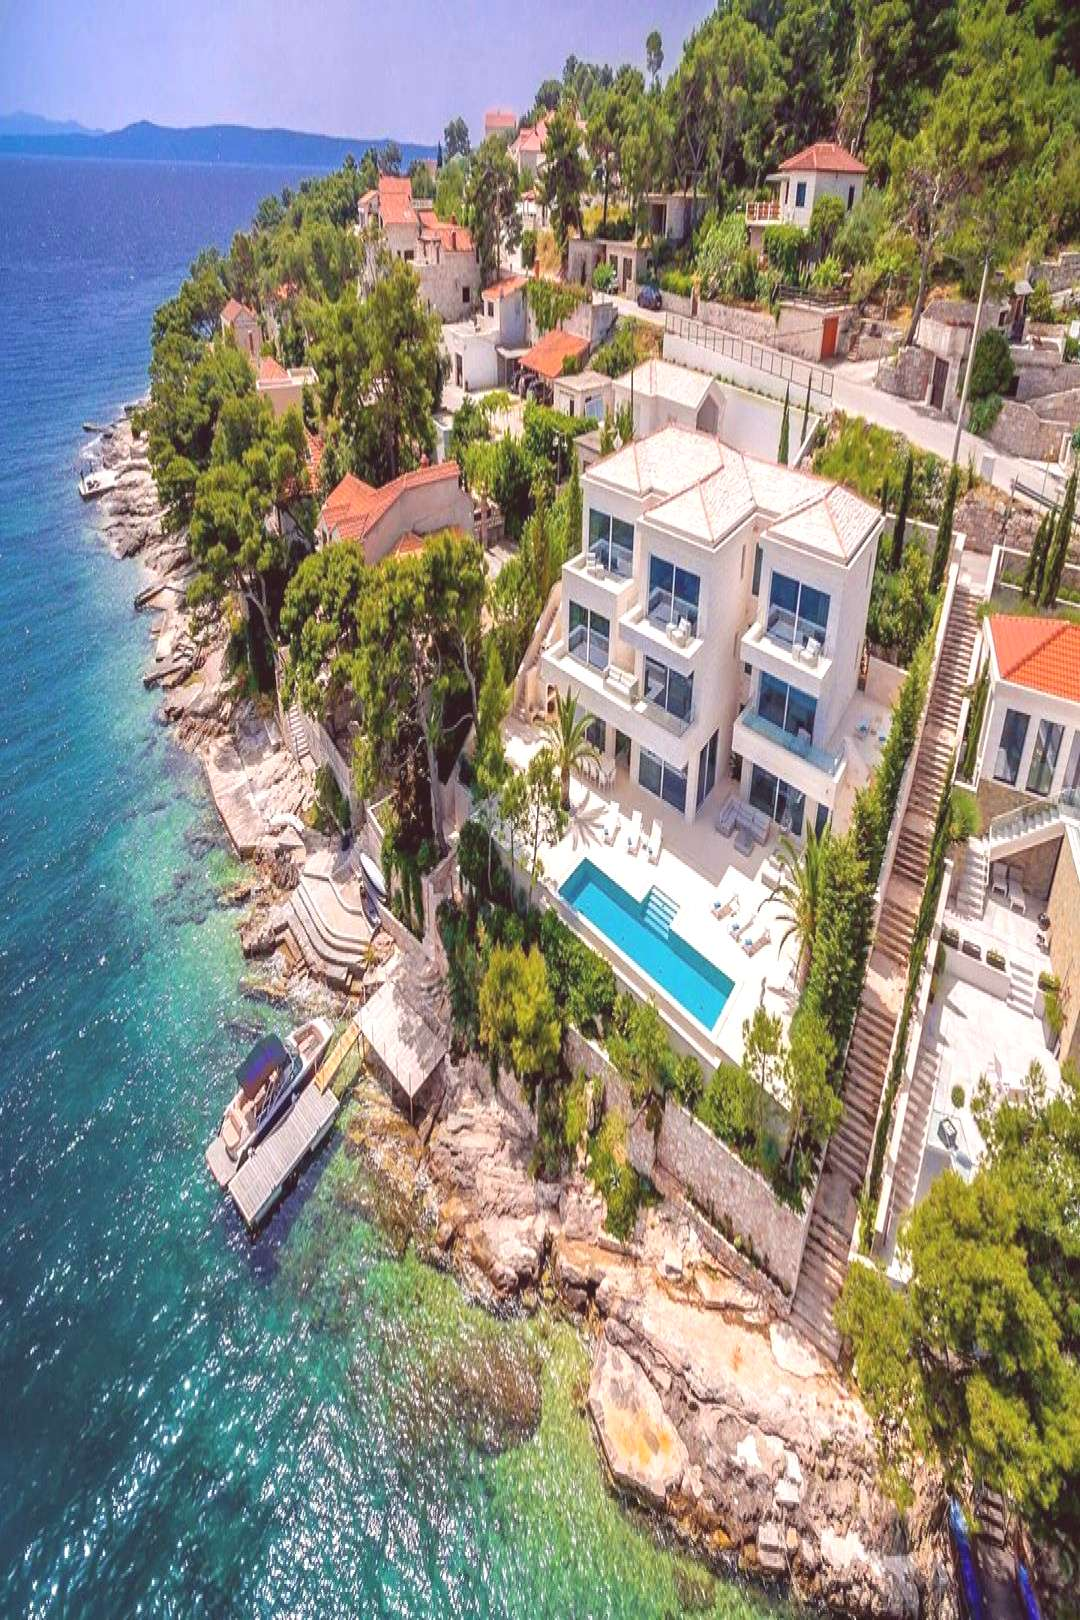 Take your family or friends and come to Villa Milena, a luxurious